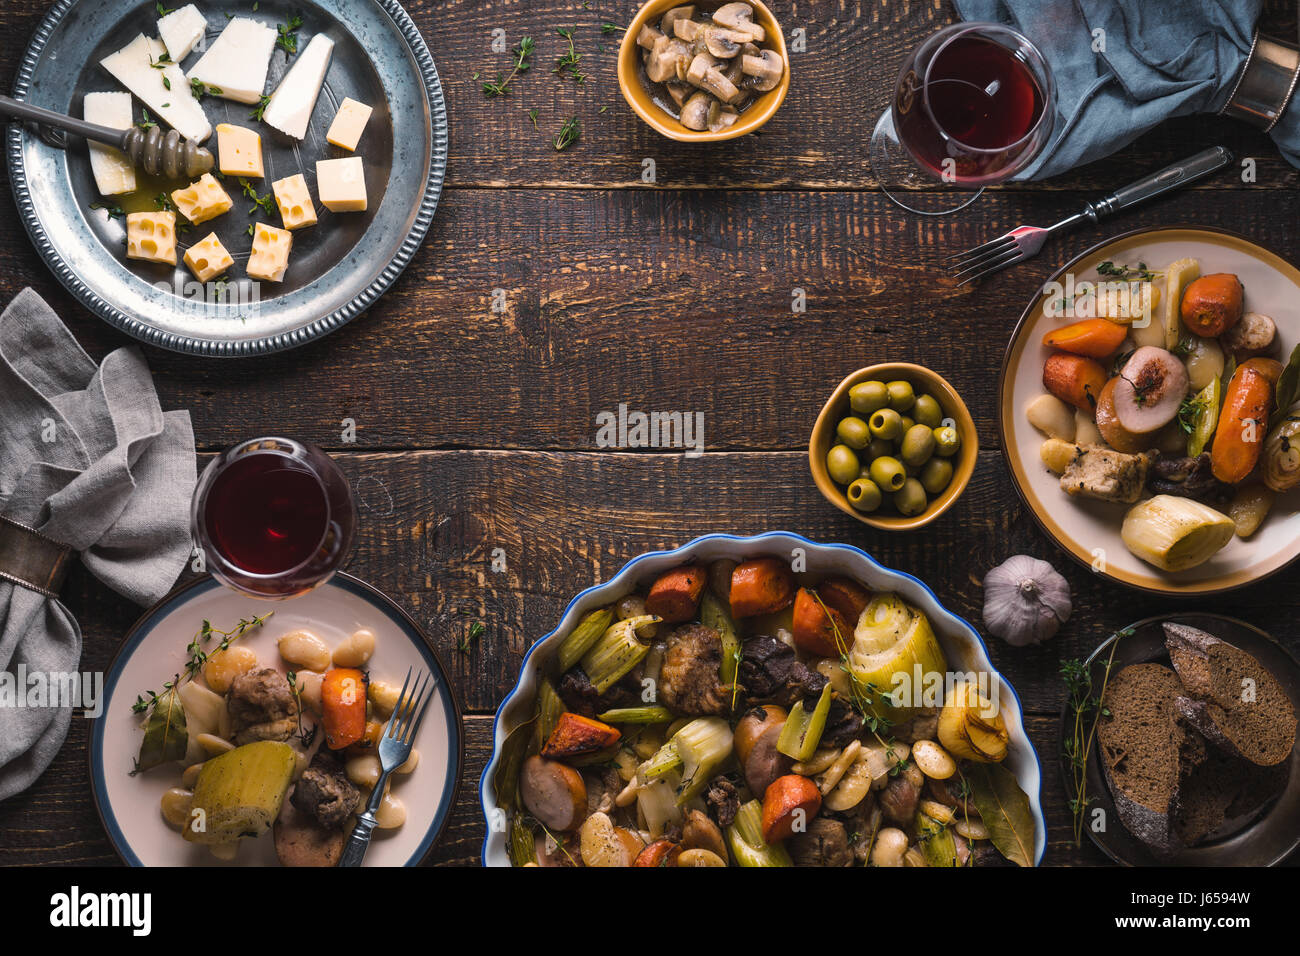 Ready-made kasul, cheese, bread, olives on the table free space - Stock Image